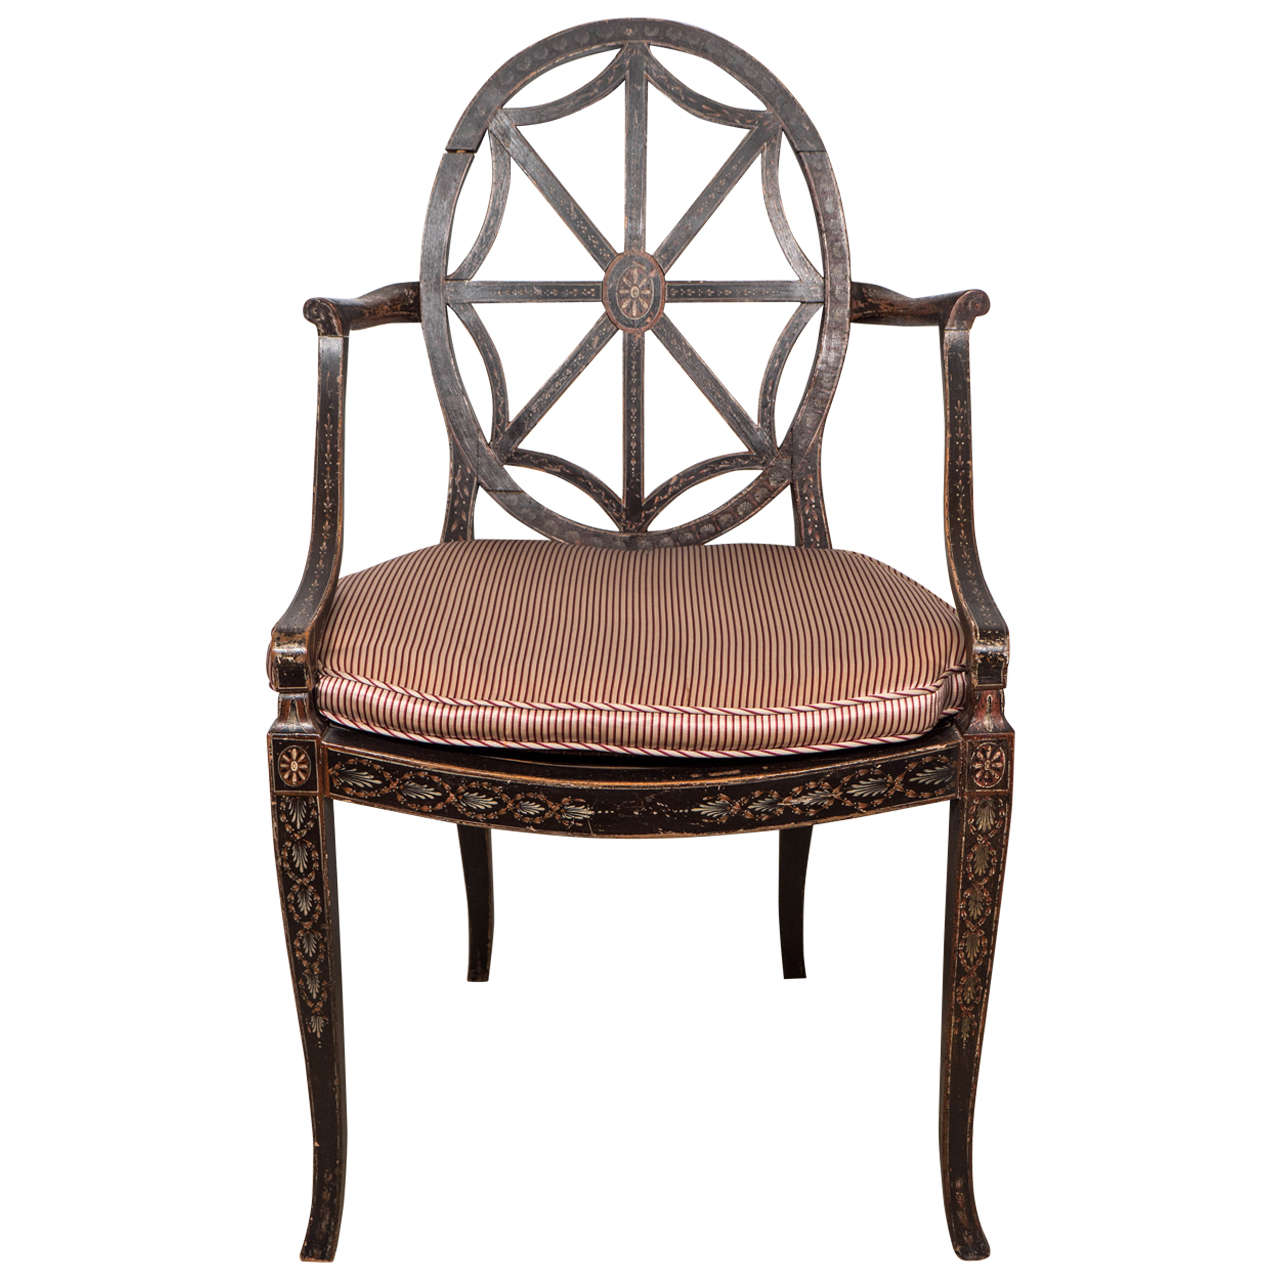 Antique George Iii Painted And Decorated Armchair In The